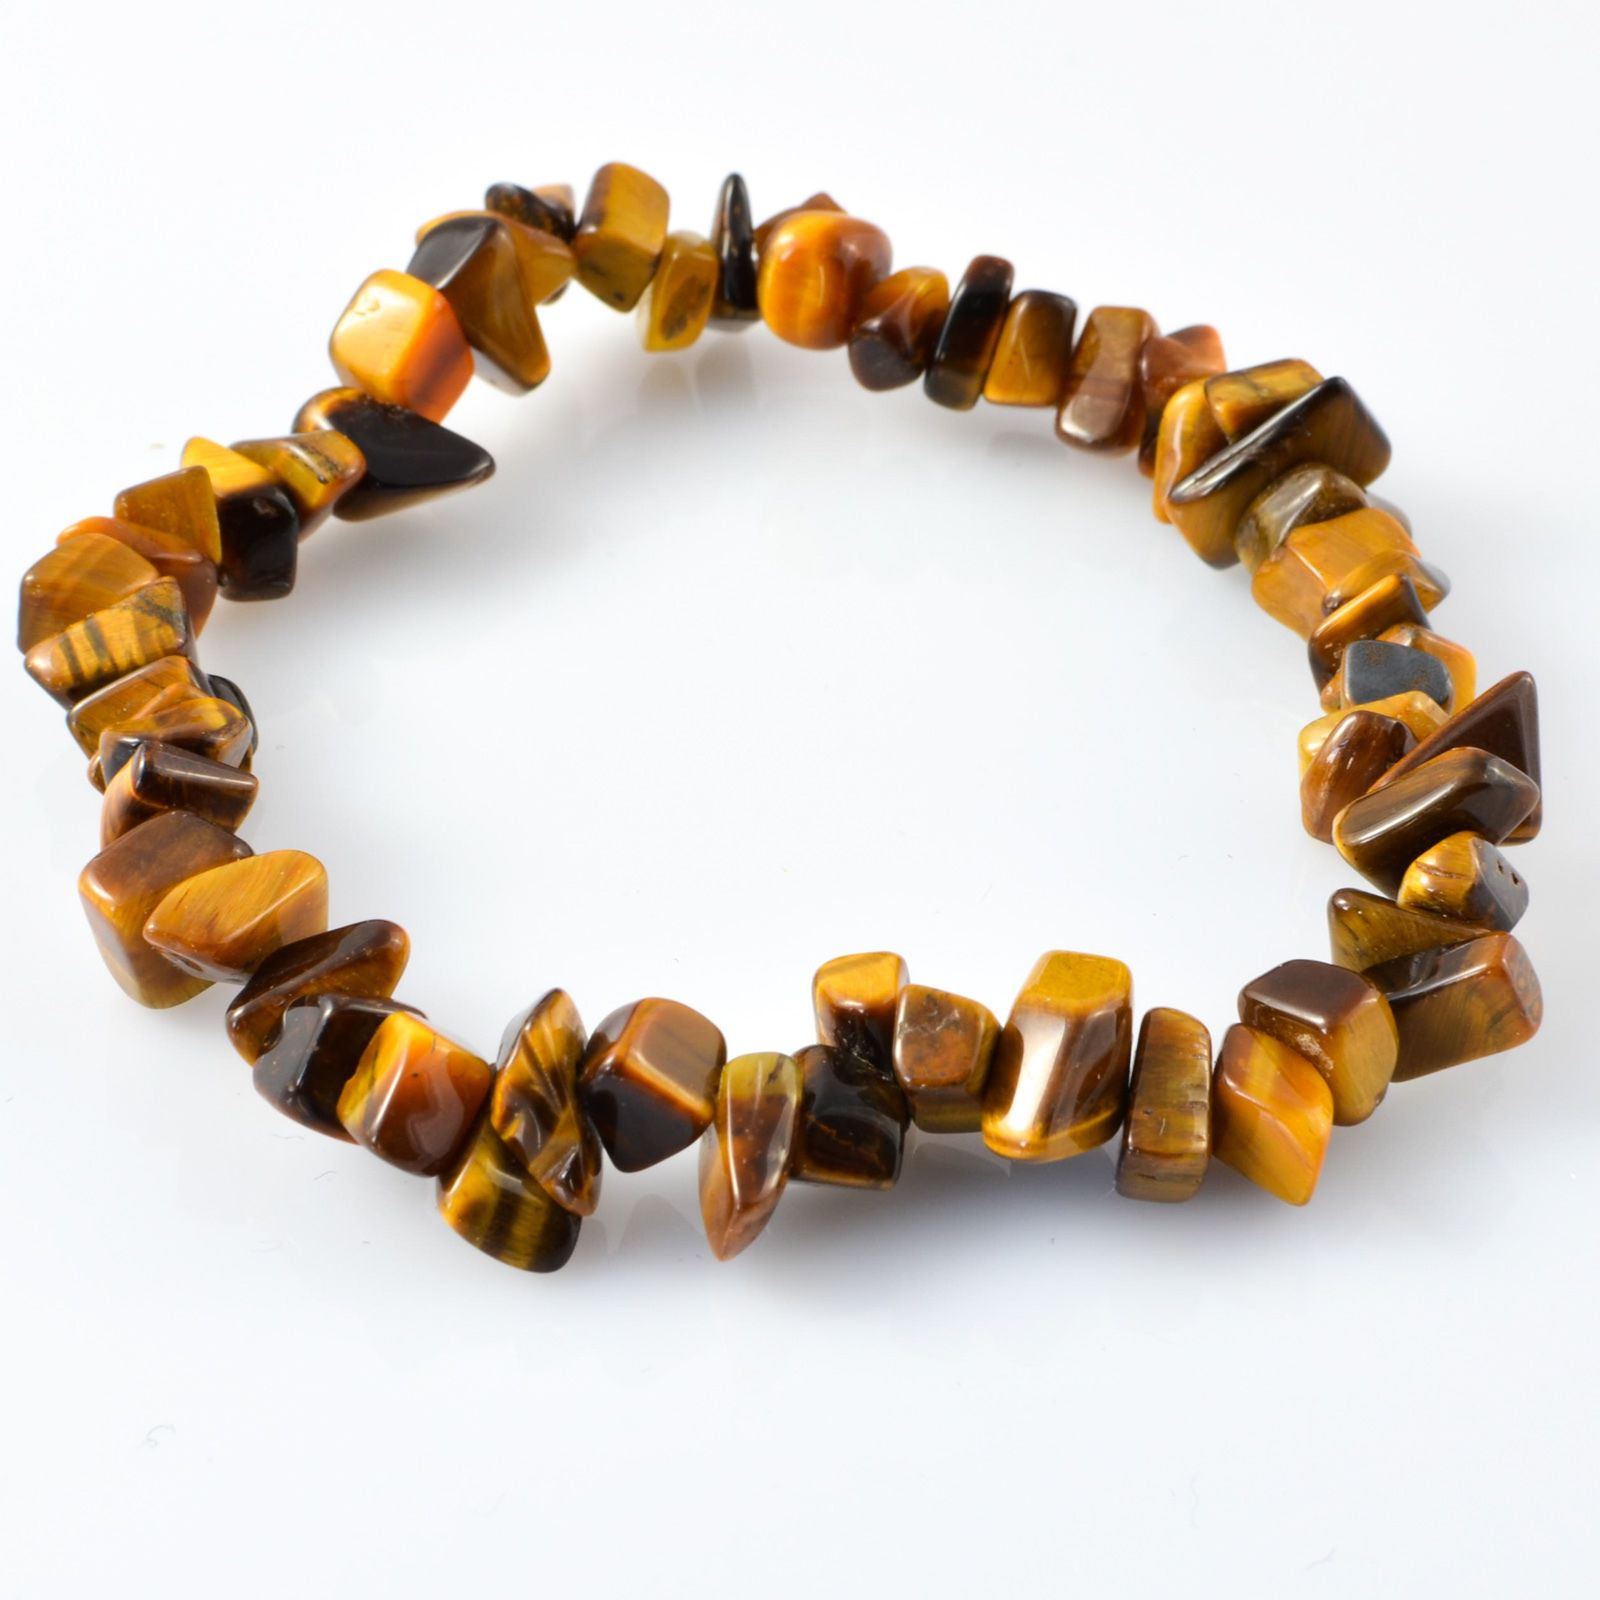 Charmed Tiger's Eye Weight Loss Bracelet - price includes postage